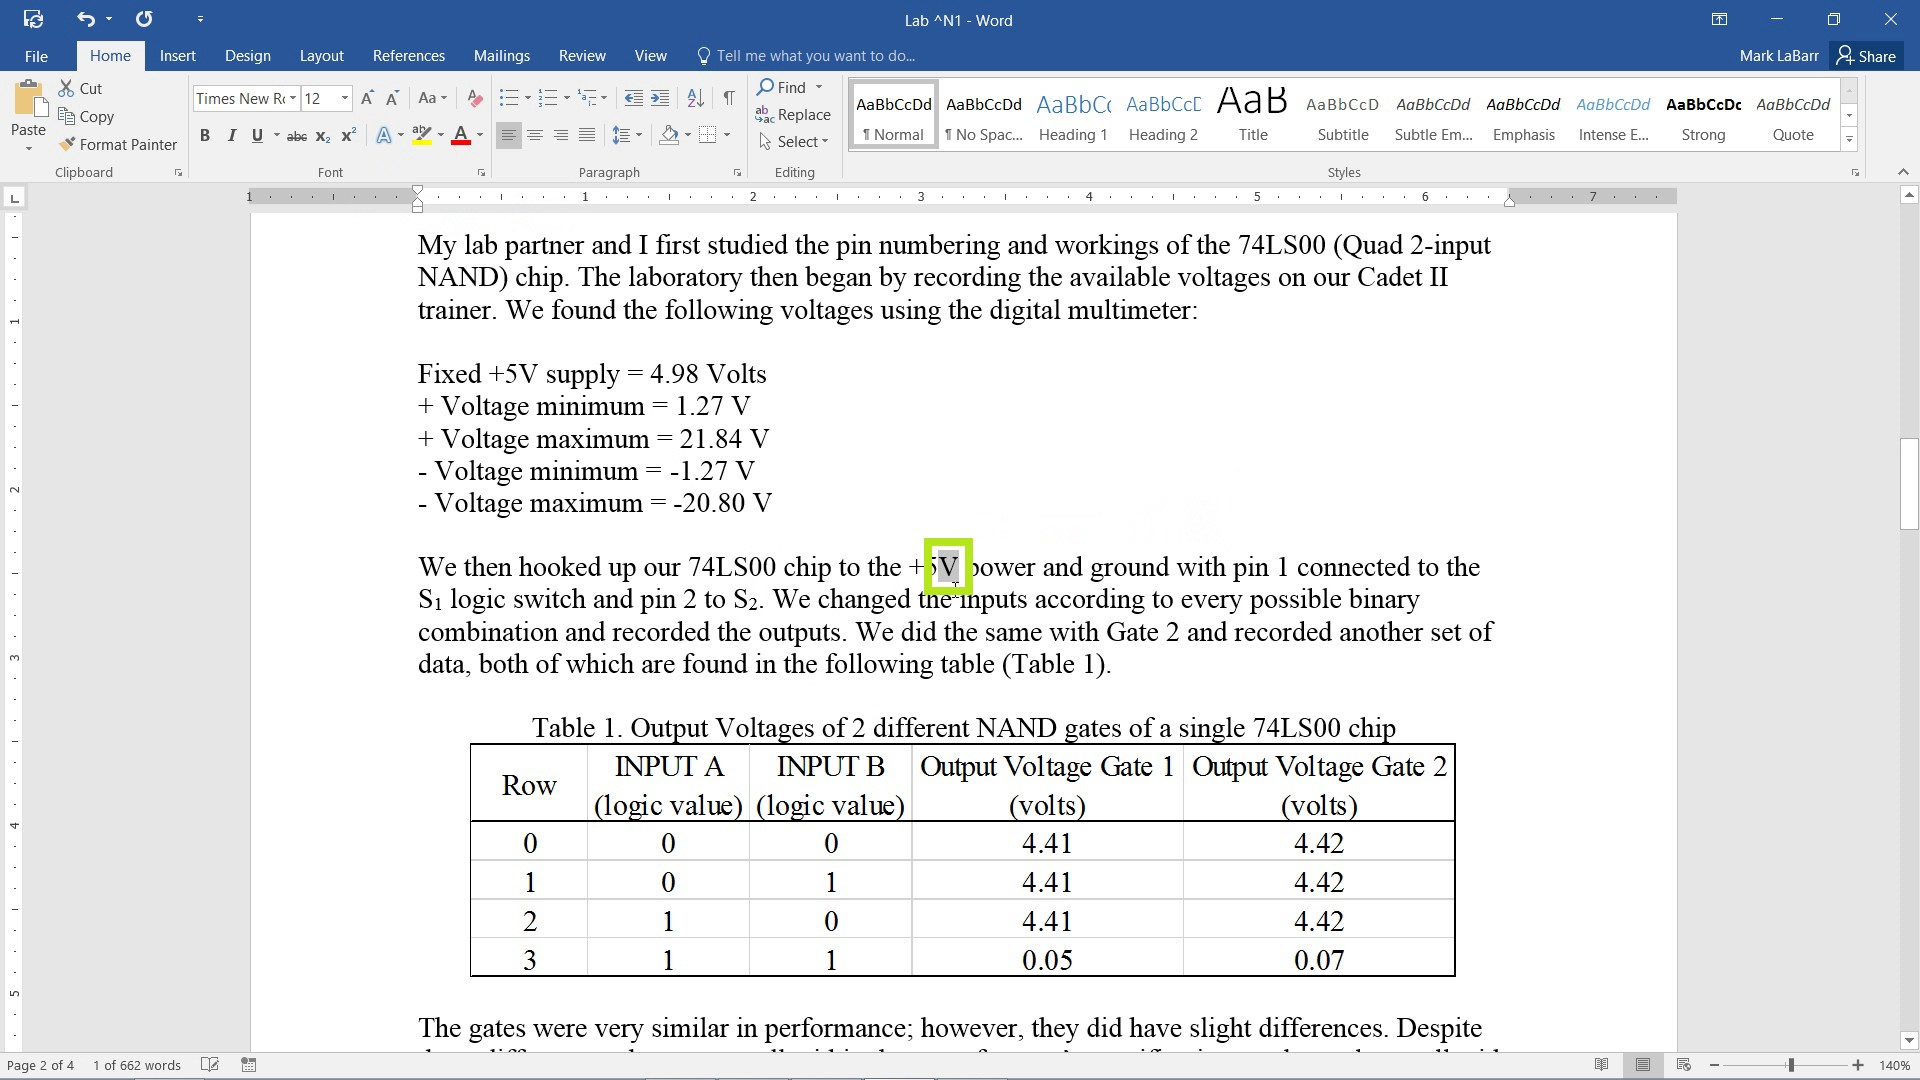 Create Subscripts and Superscripts in Word 2016